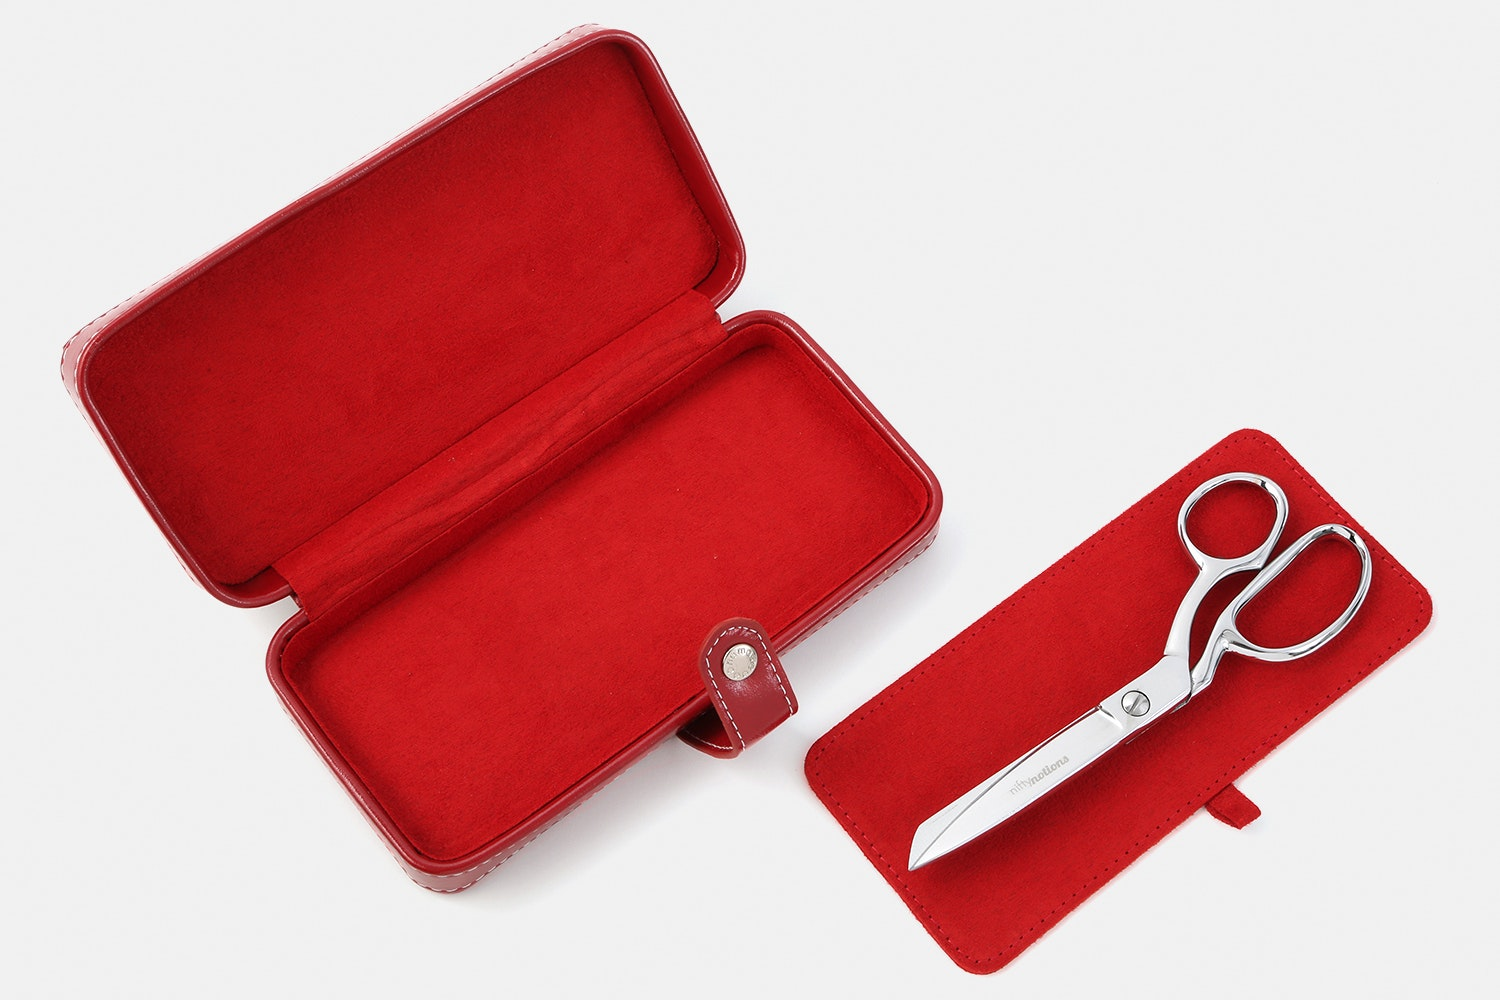 8-Inch Fabric Shears & Case